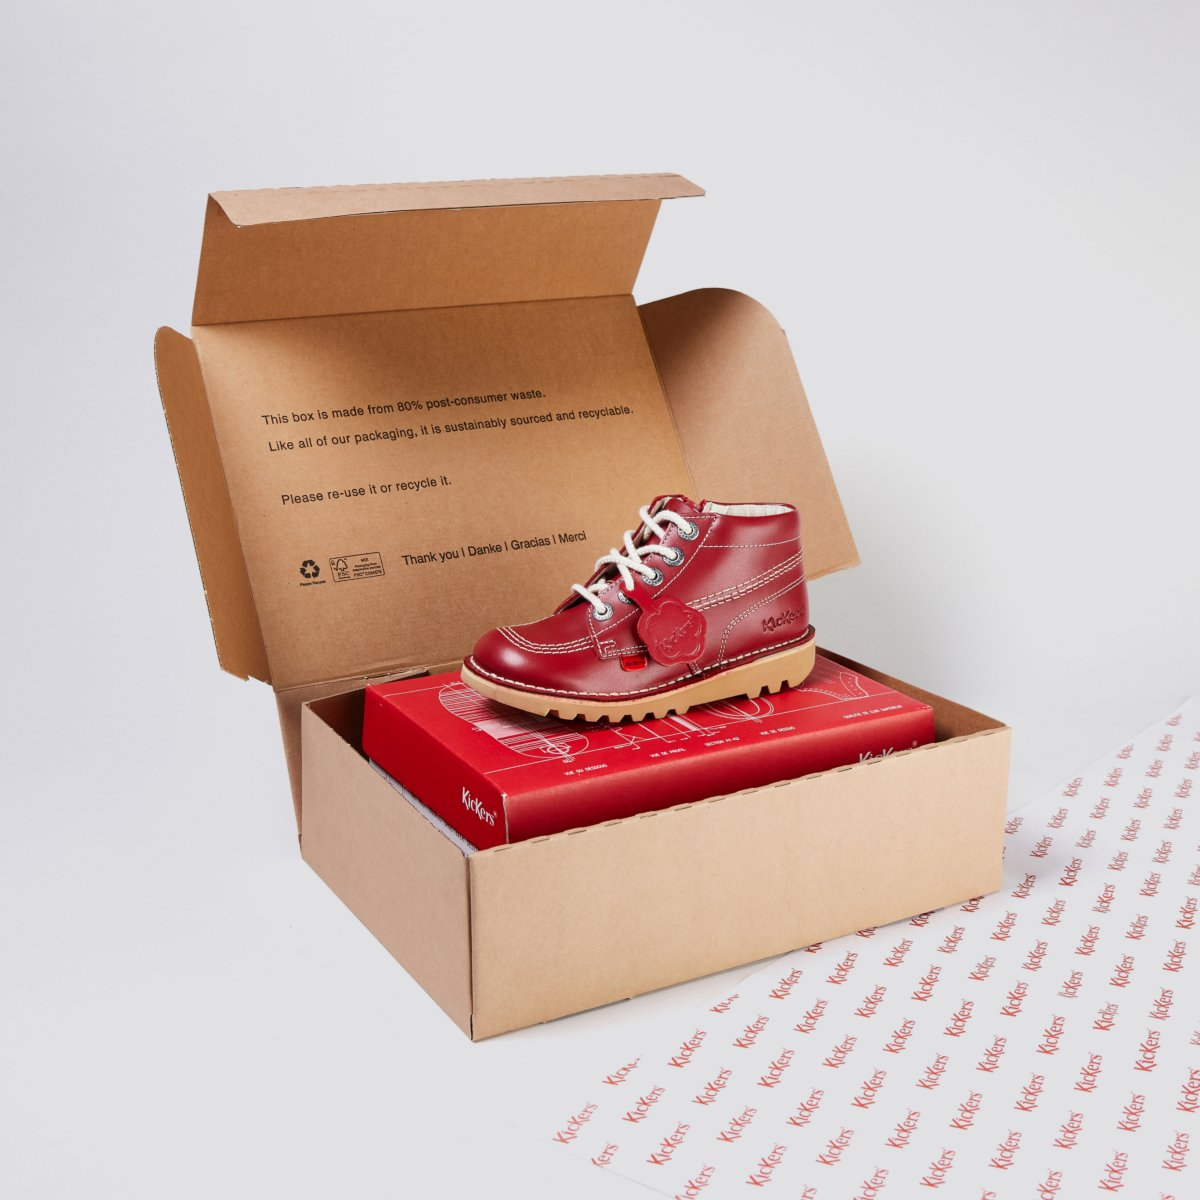 Kickers shoes rest on top of cardboard box